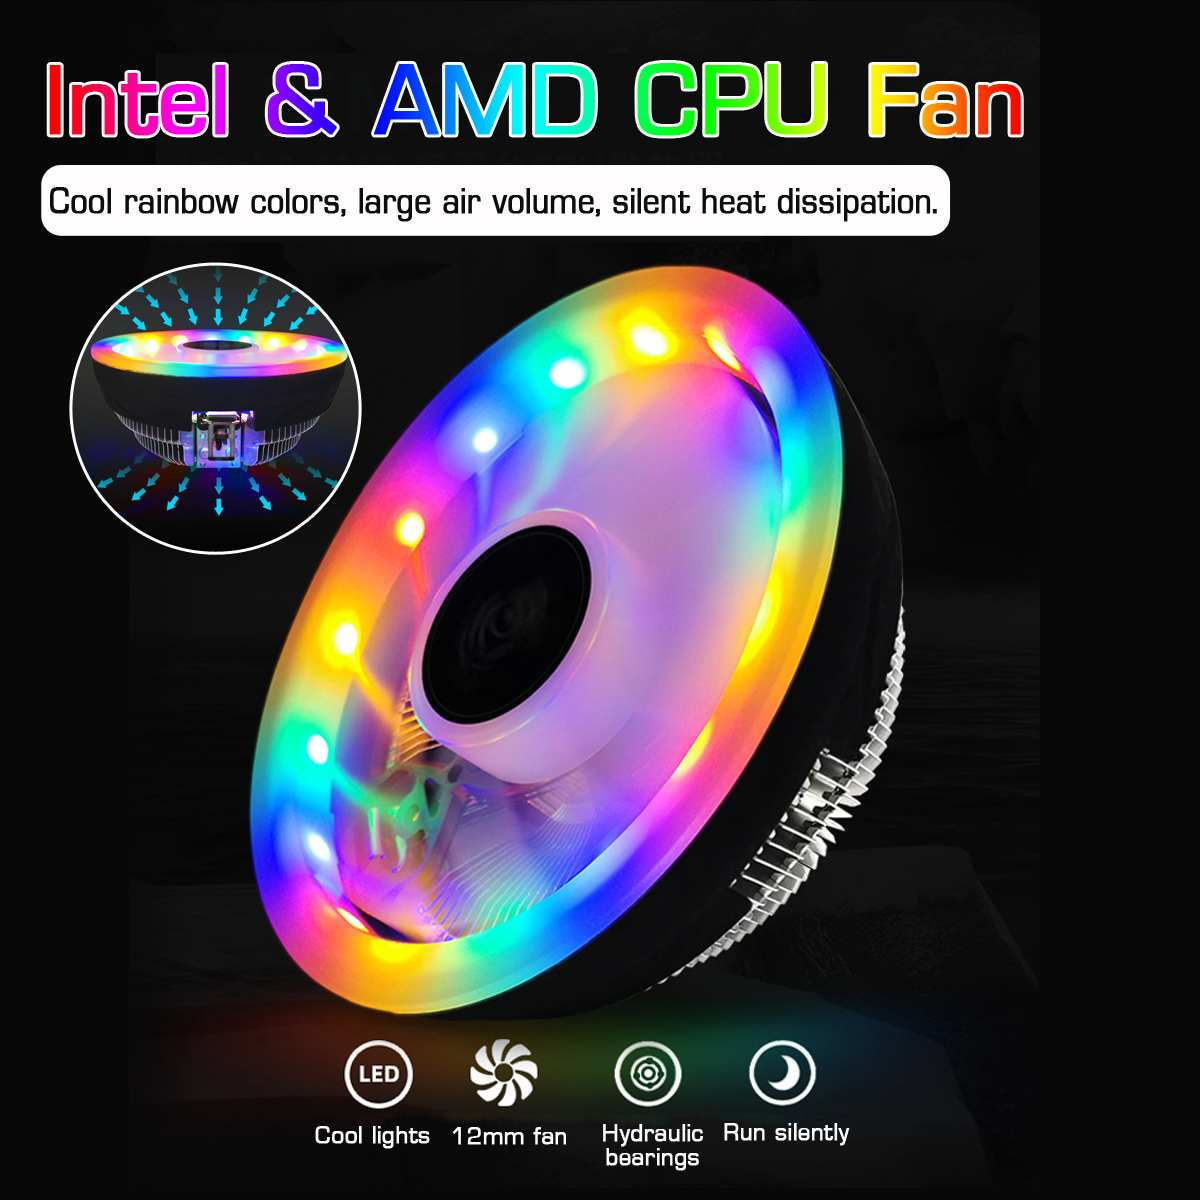 NEW Durable Heatsink CPU Cooler Cooling Radiator Fan 3 Pin RGB CPU Cooler for CPUs with Power Less than 80W image